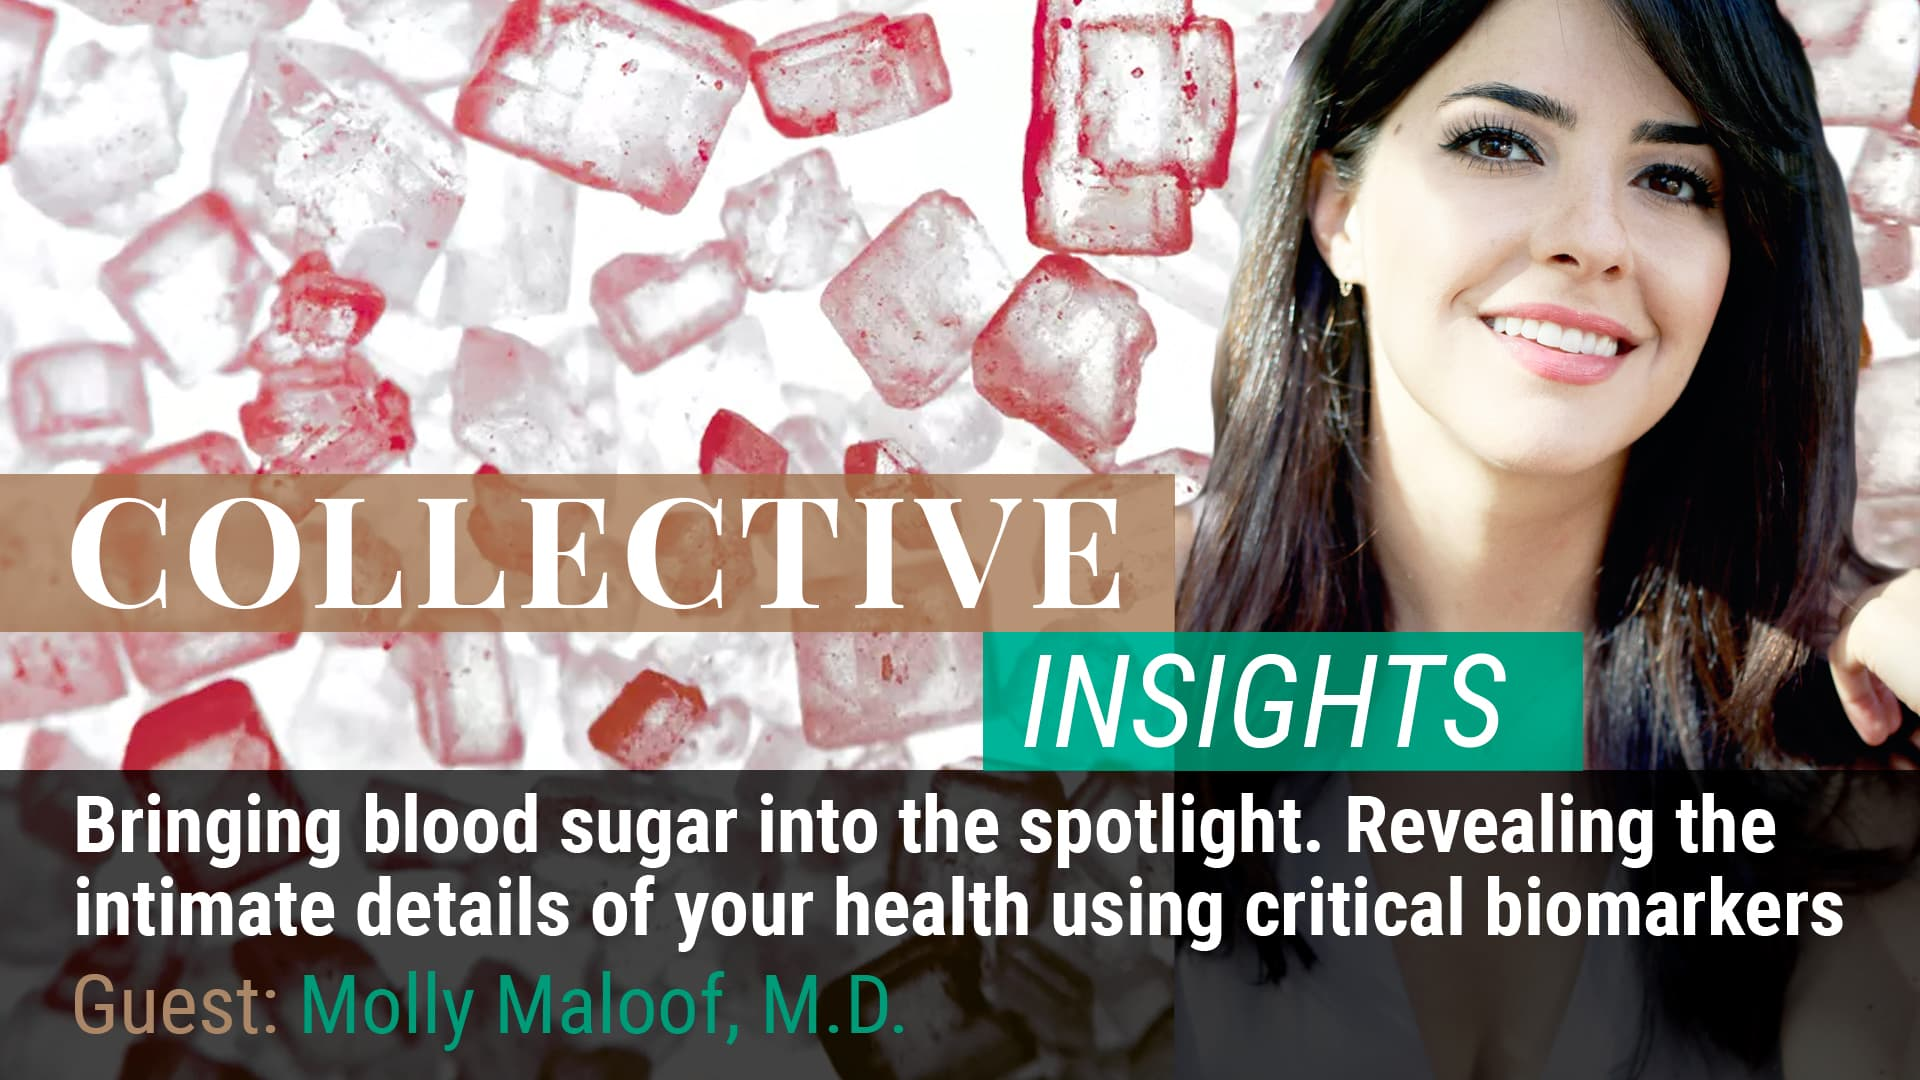 Bringing blood sugar into the spotlight. Revealing the intimate details of your health using critical biomarkers with Dr. Molly Maloof